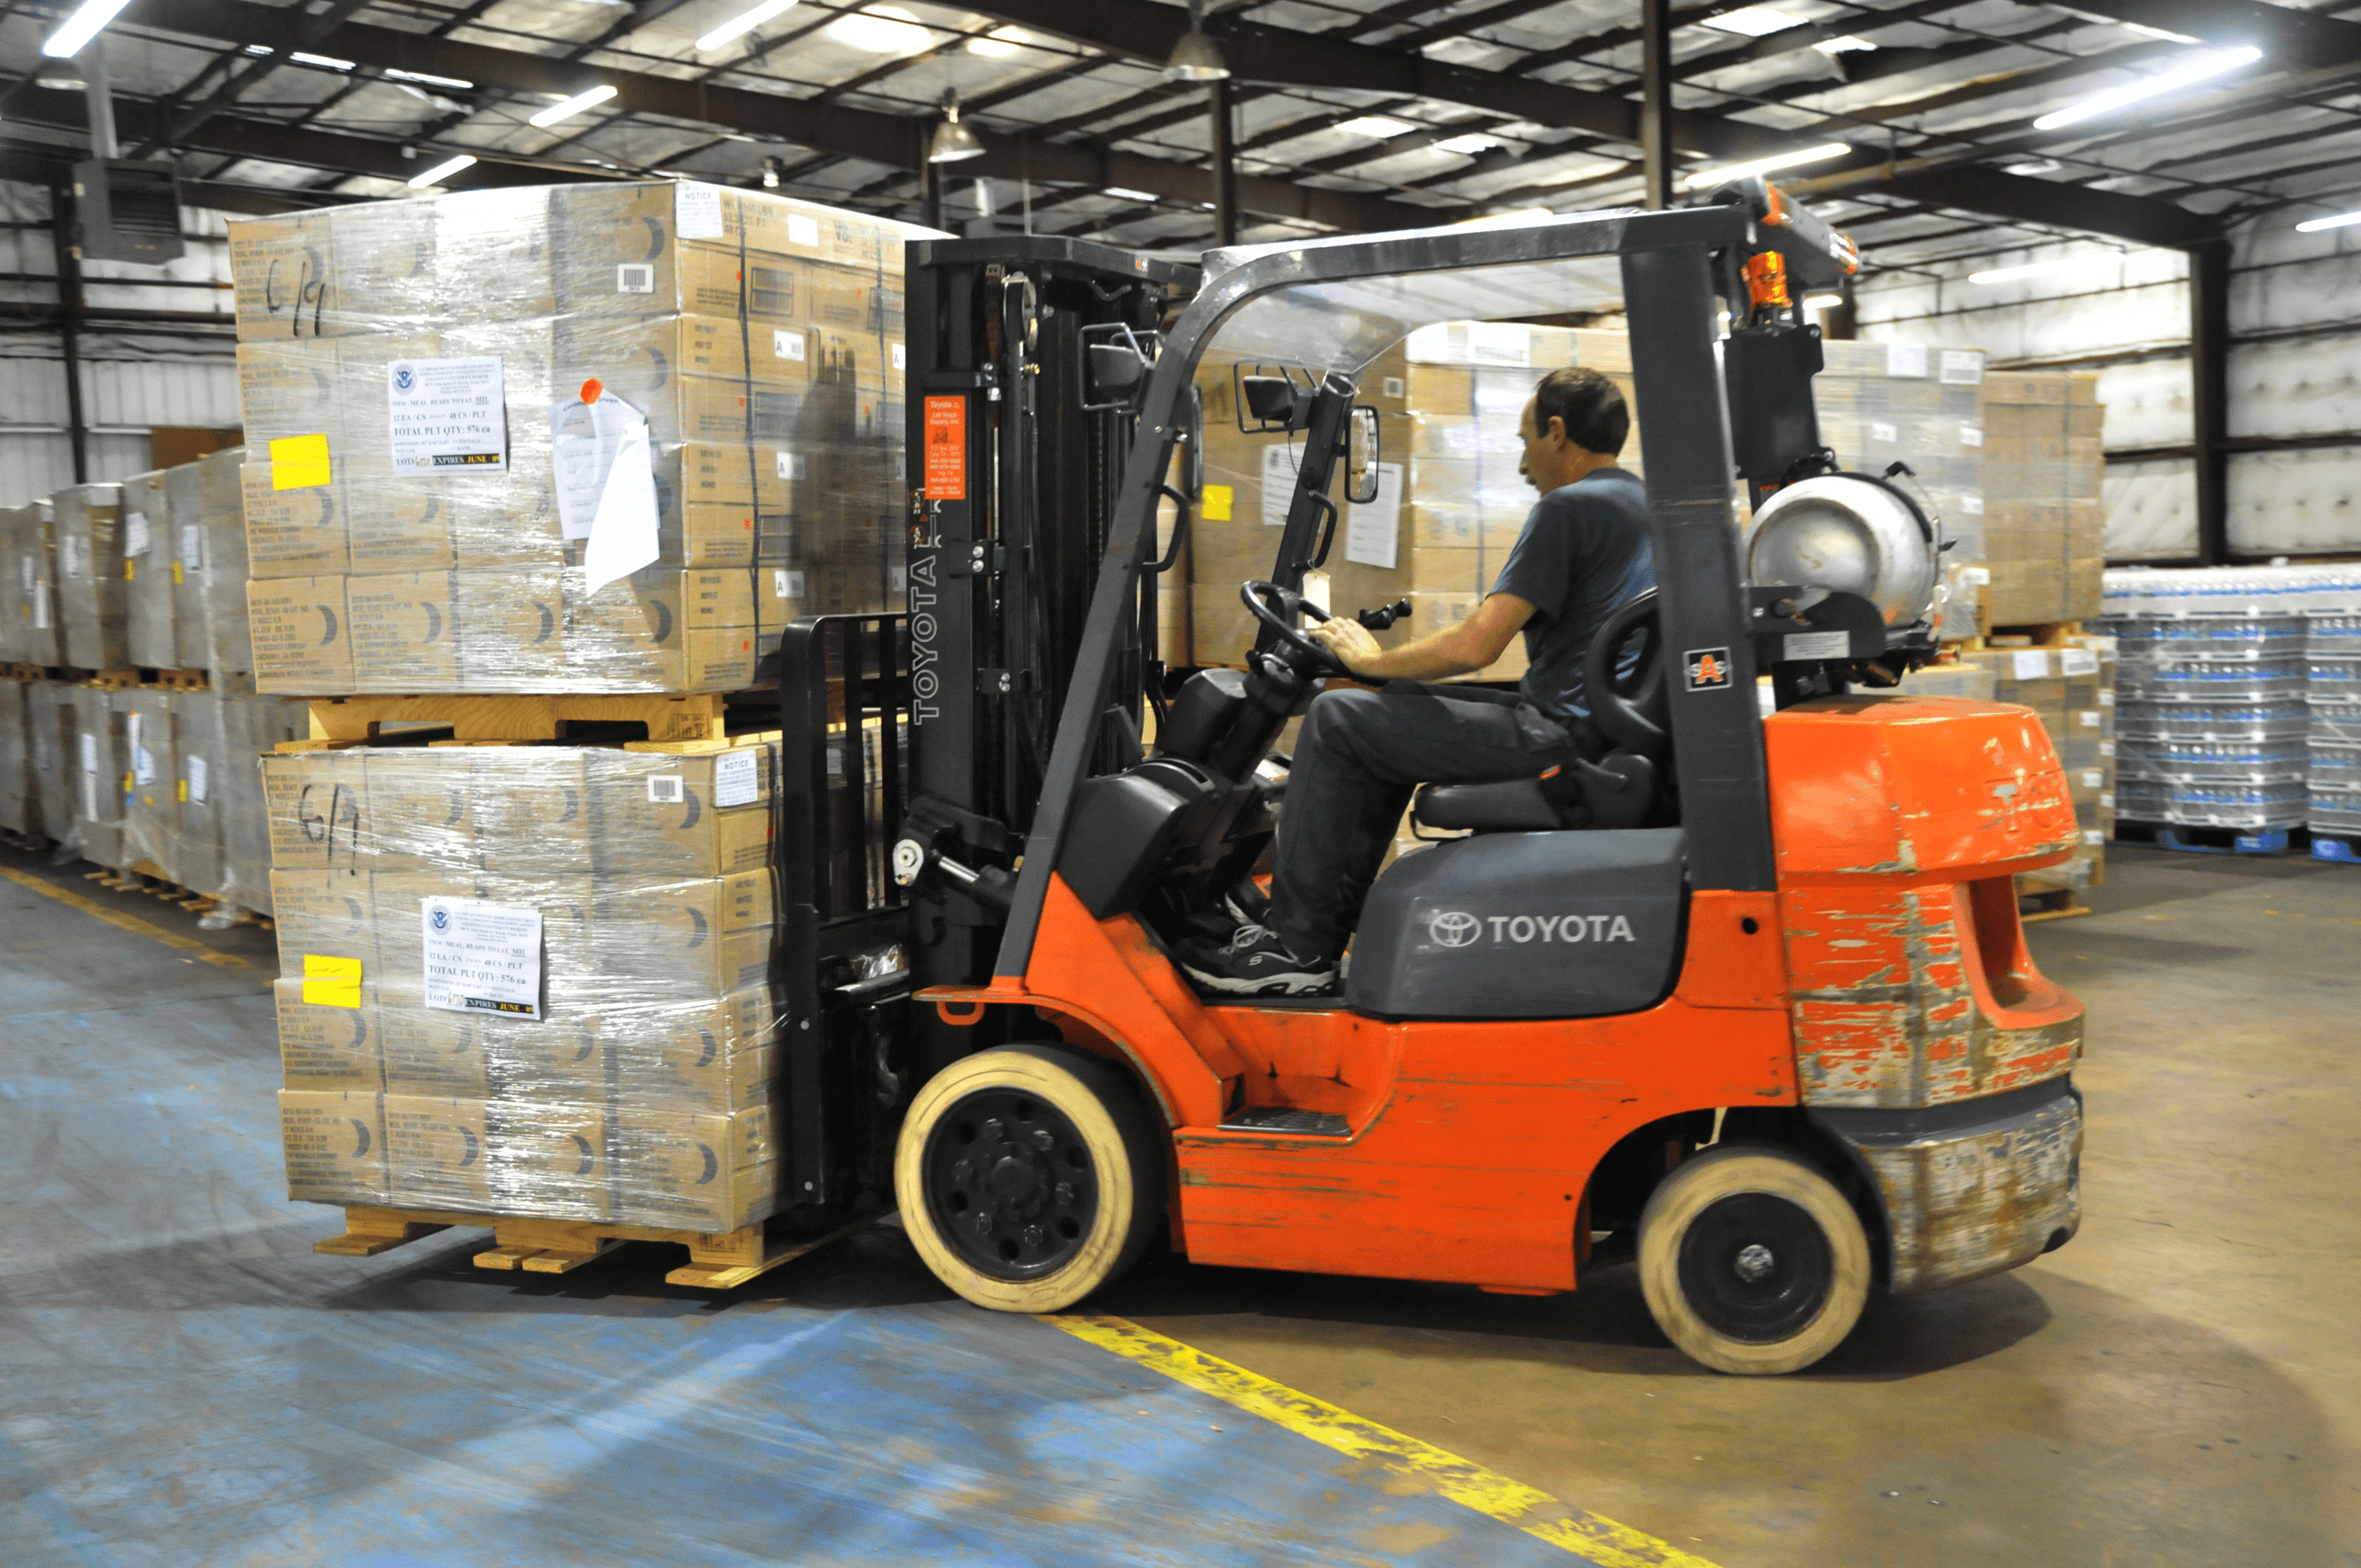 Selecting warehouse management systems